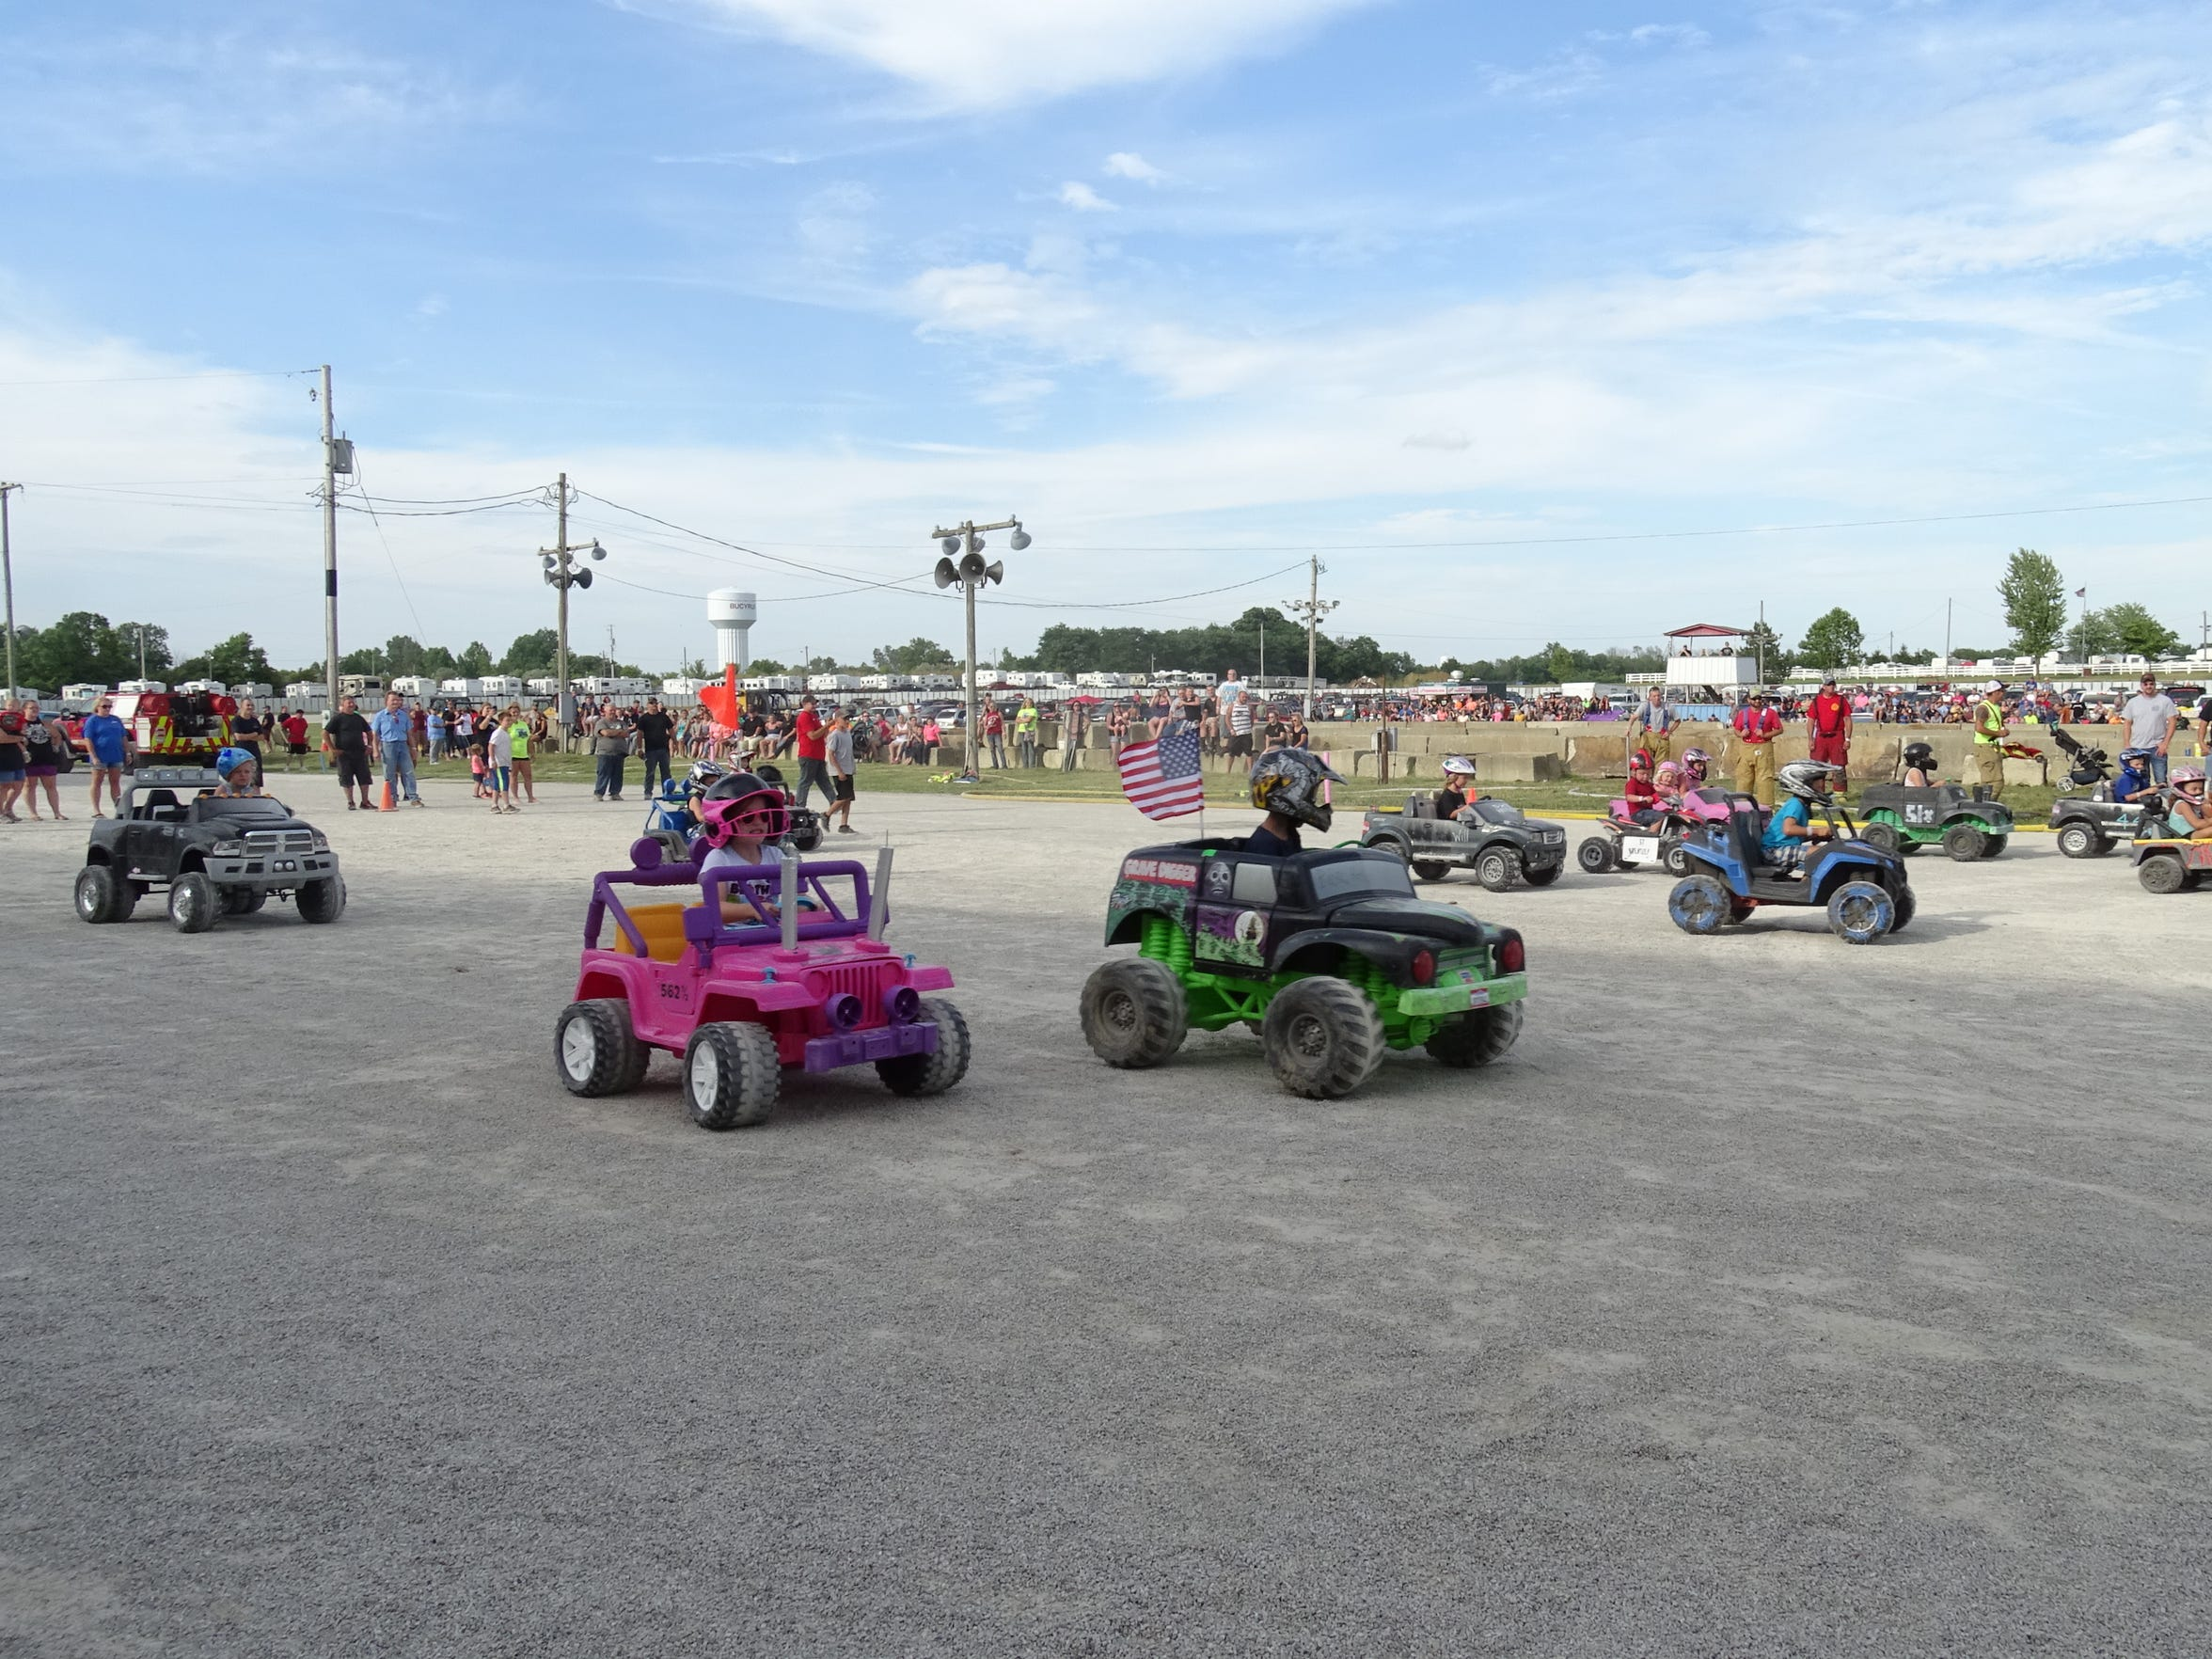 Nearly two dozen youngsters race their electric cars